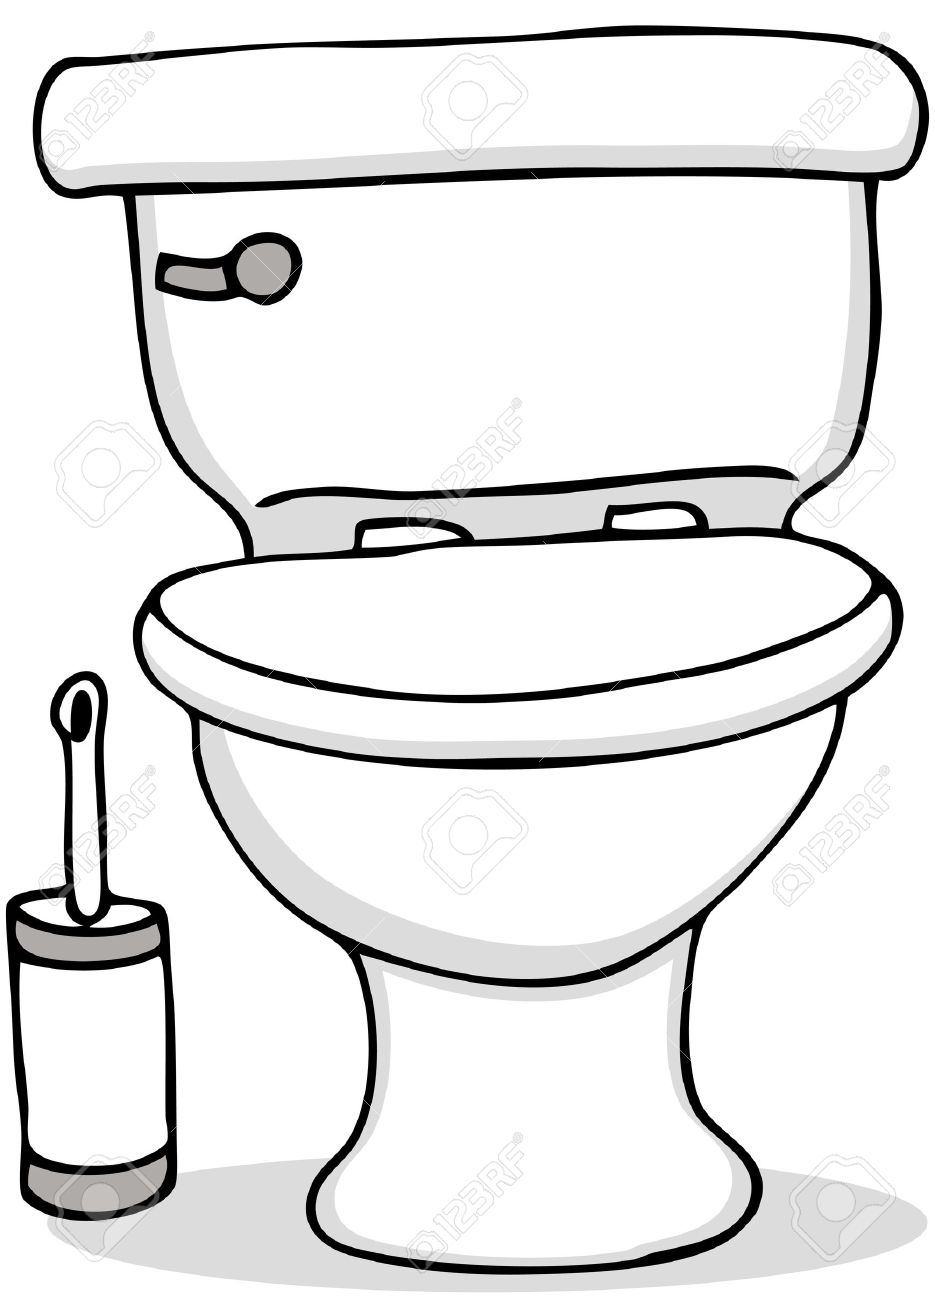 Bathroom clipart black and white - Download